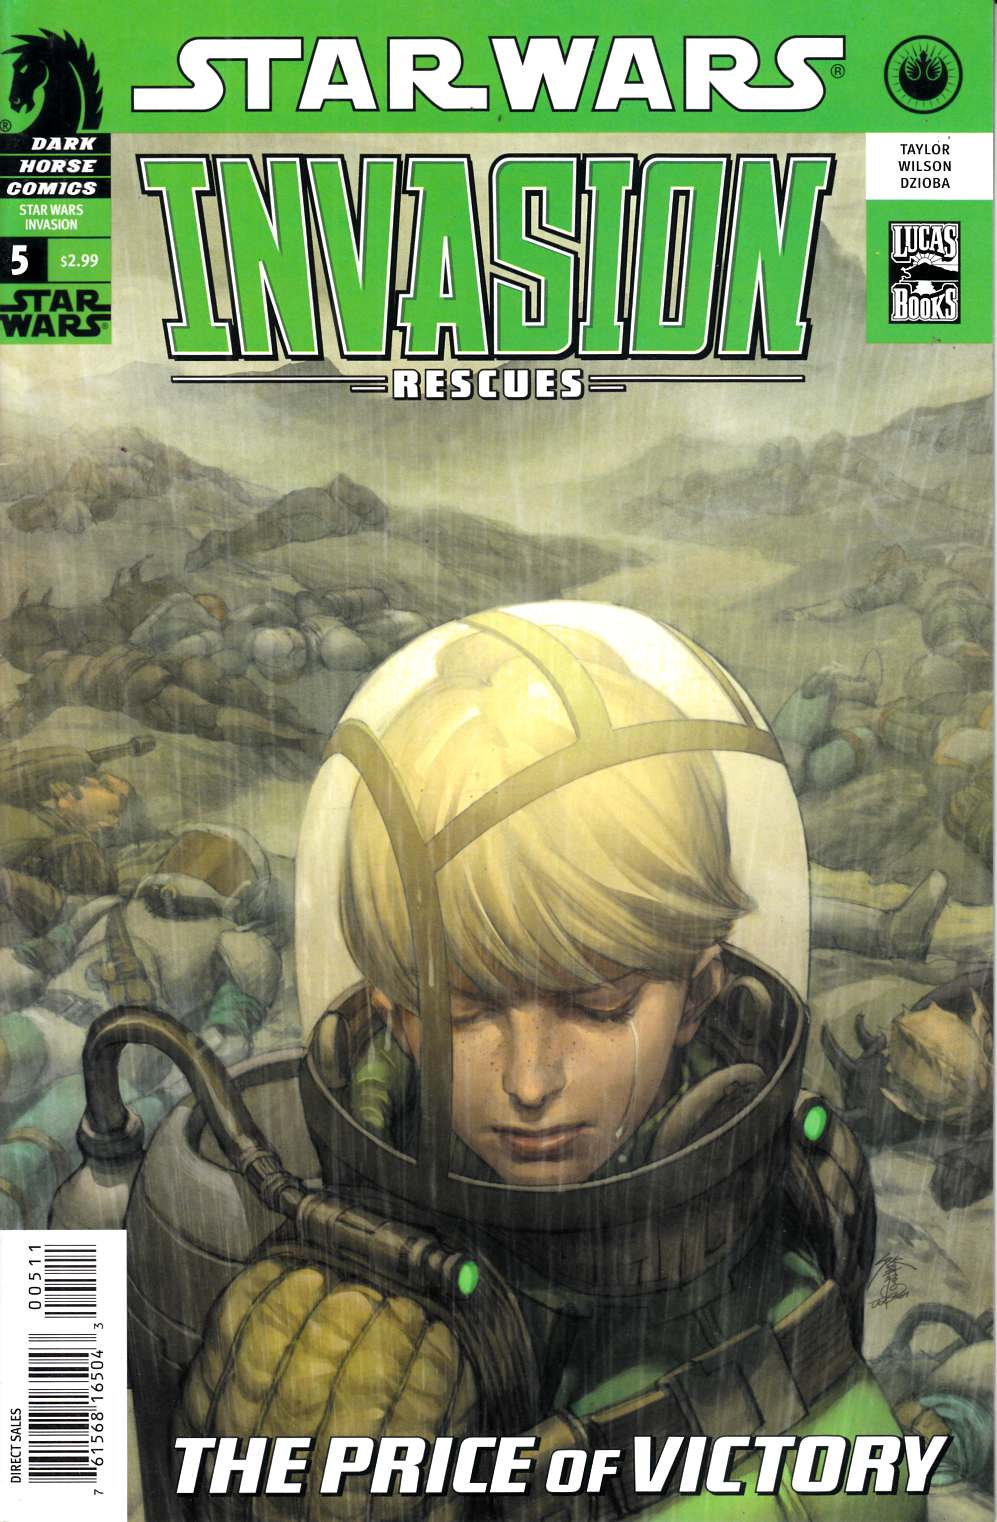 Star Wars Invasion Rescues #5 Very Fine (8.0) [Dark Horse Comic] THUMBNAIL